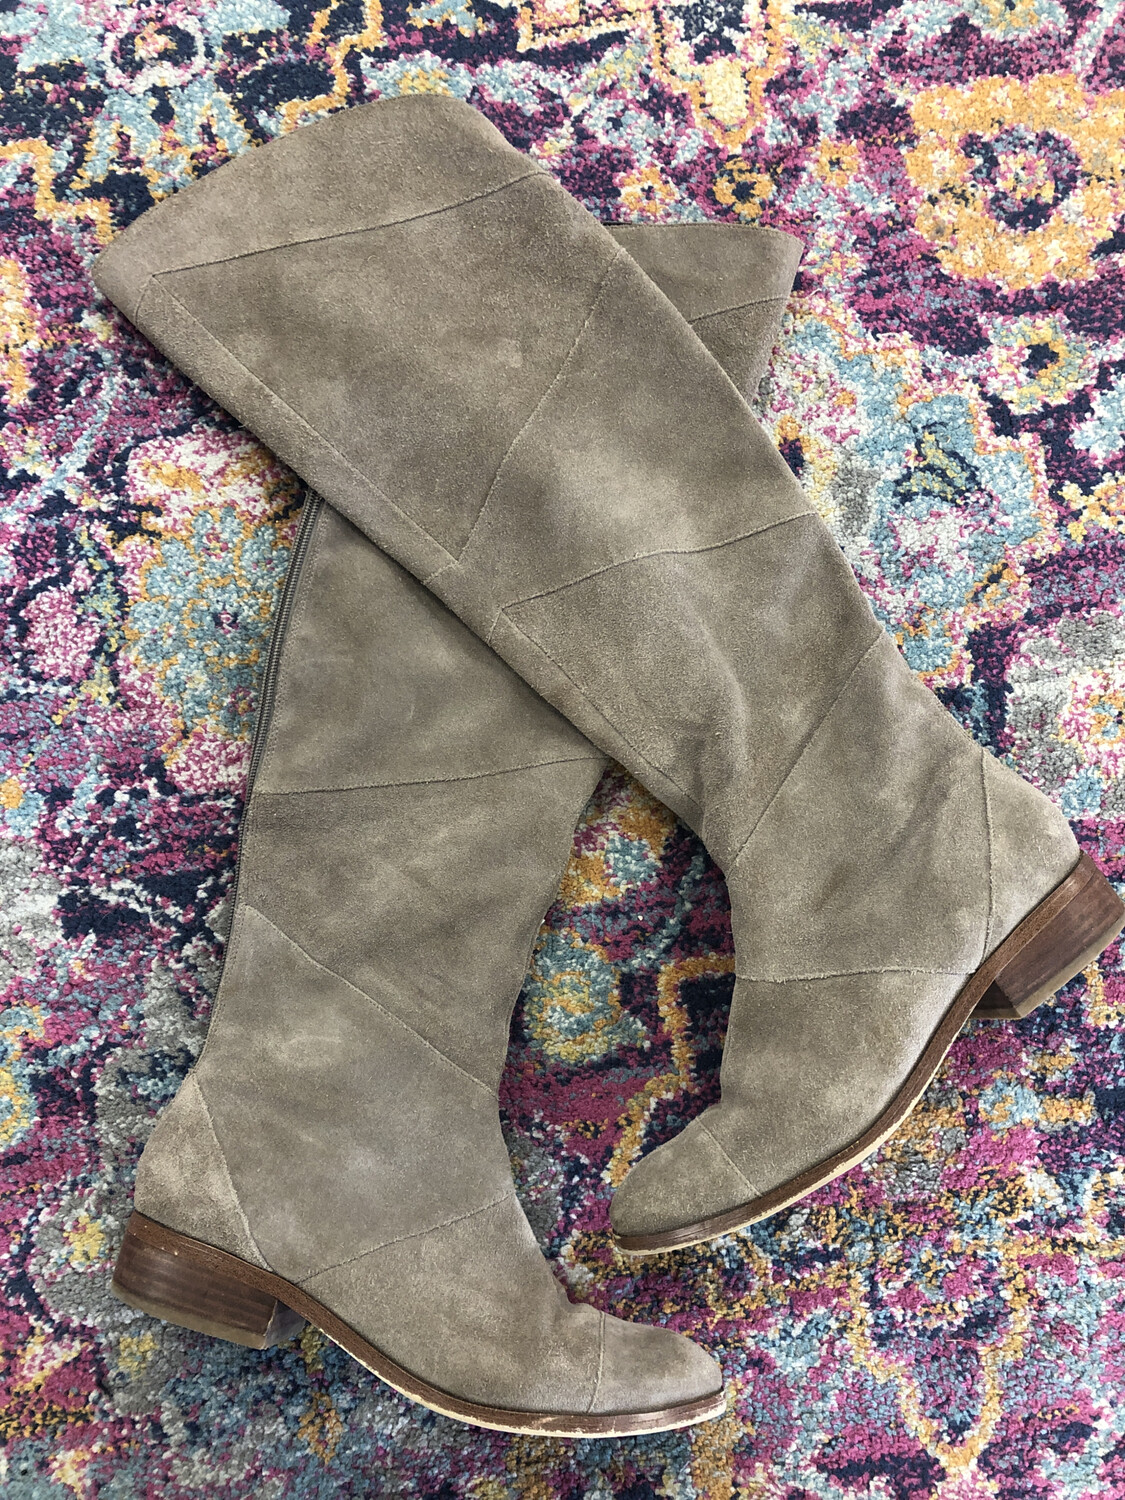 Sole Society Taupe Knee High Boots - Size 10